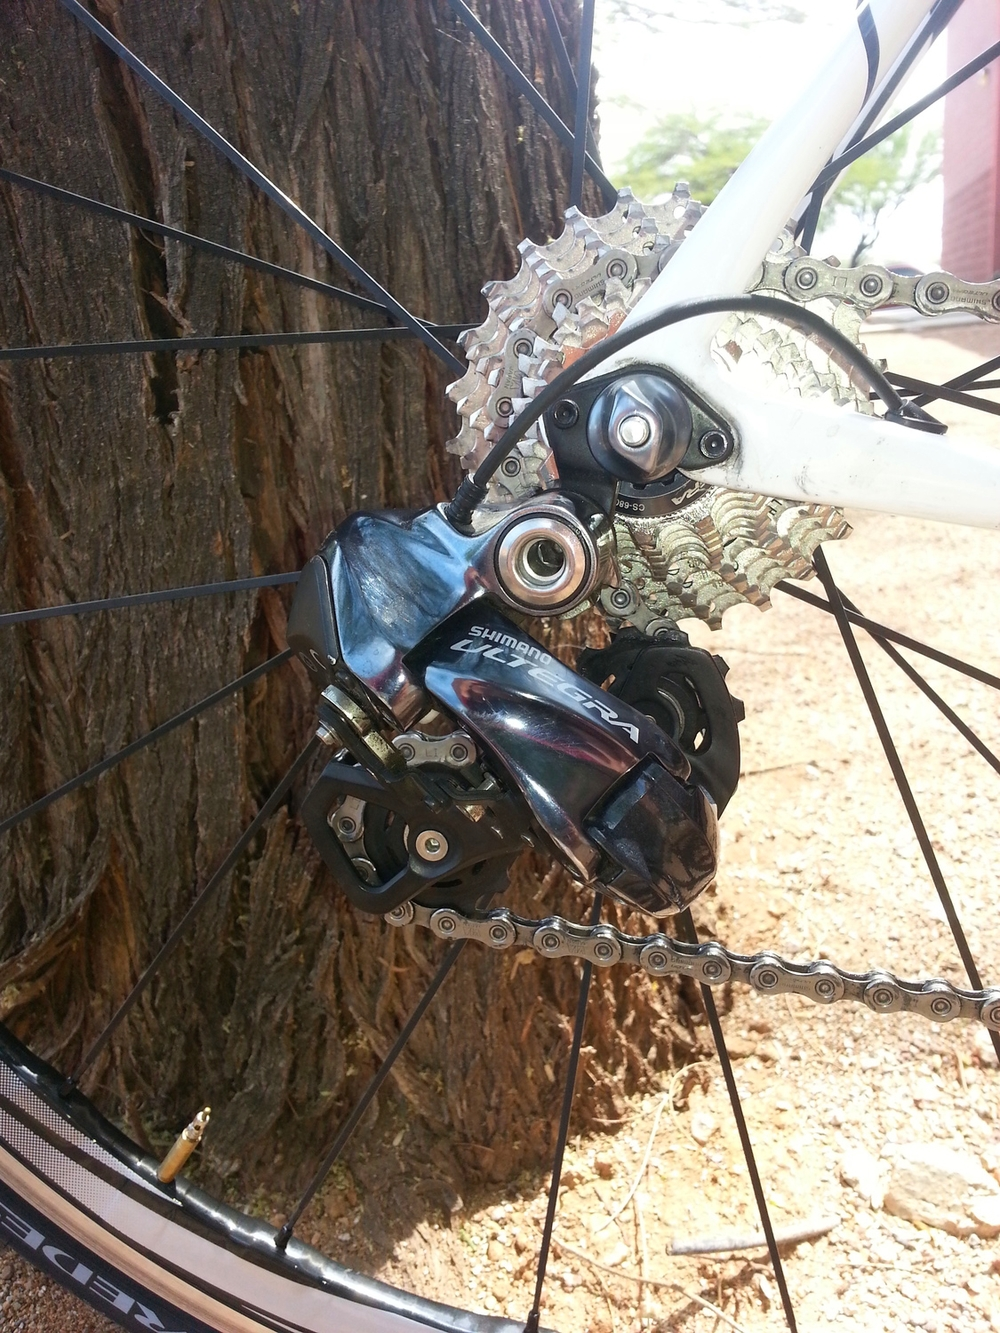 Clean looking rear derailleur smoothly shifts the gears without skipping a beat.